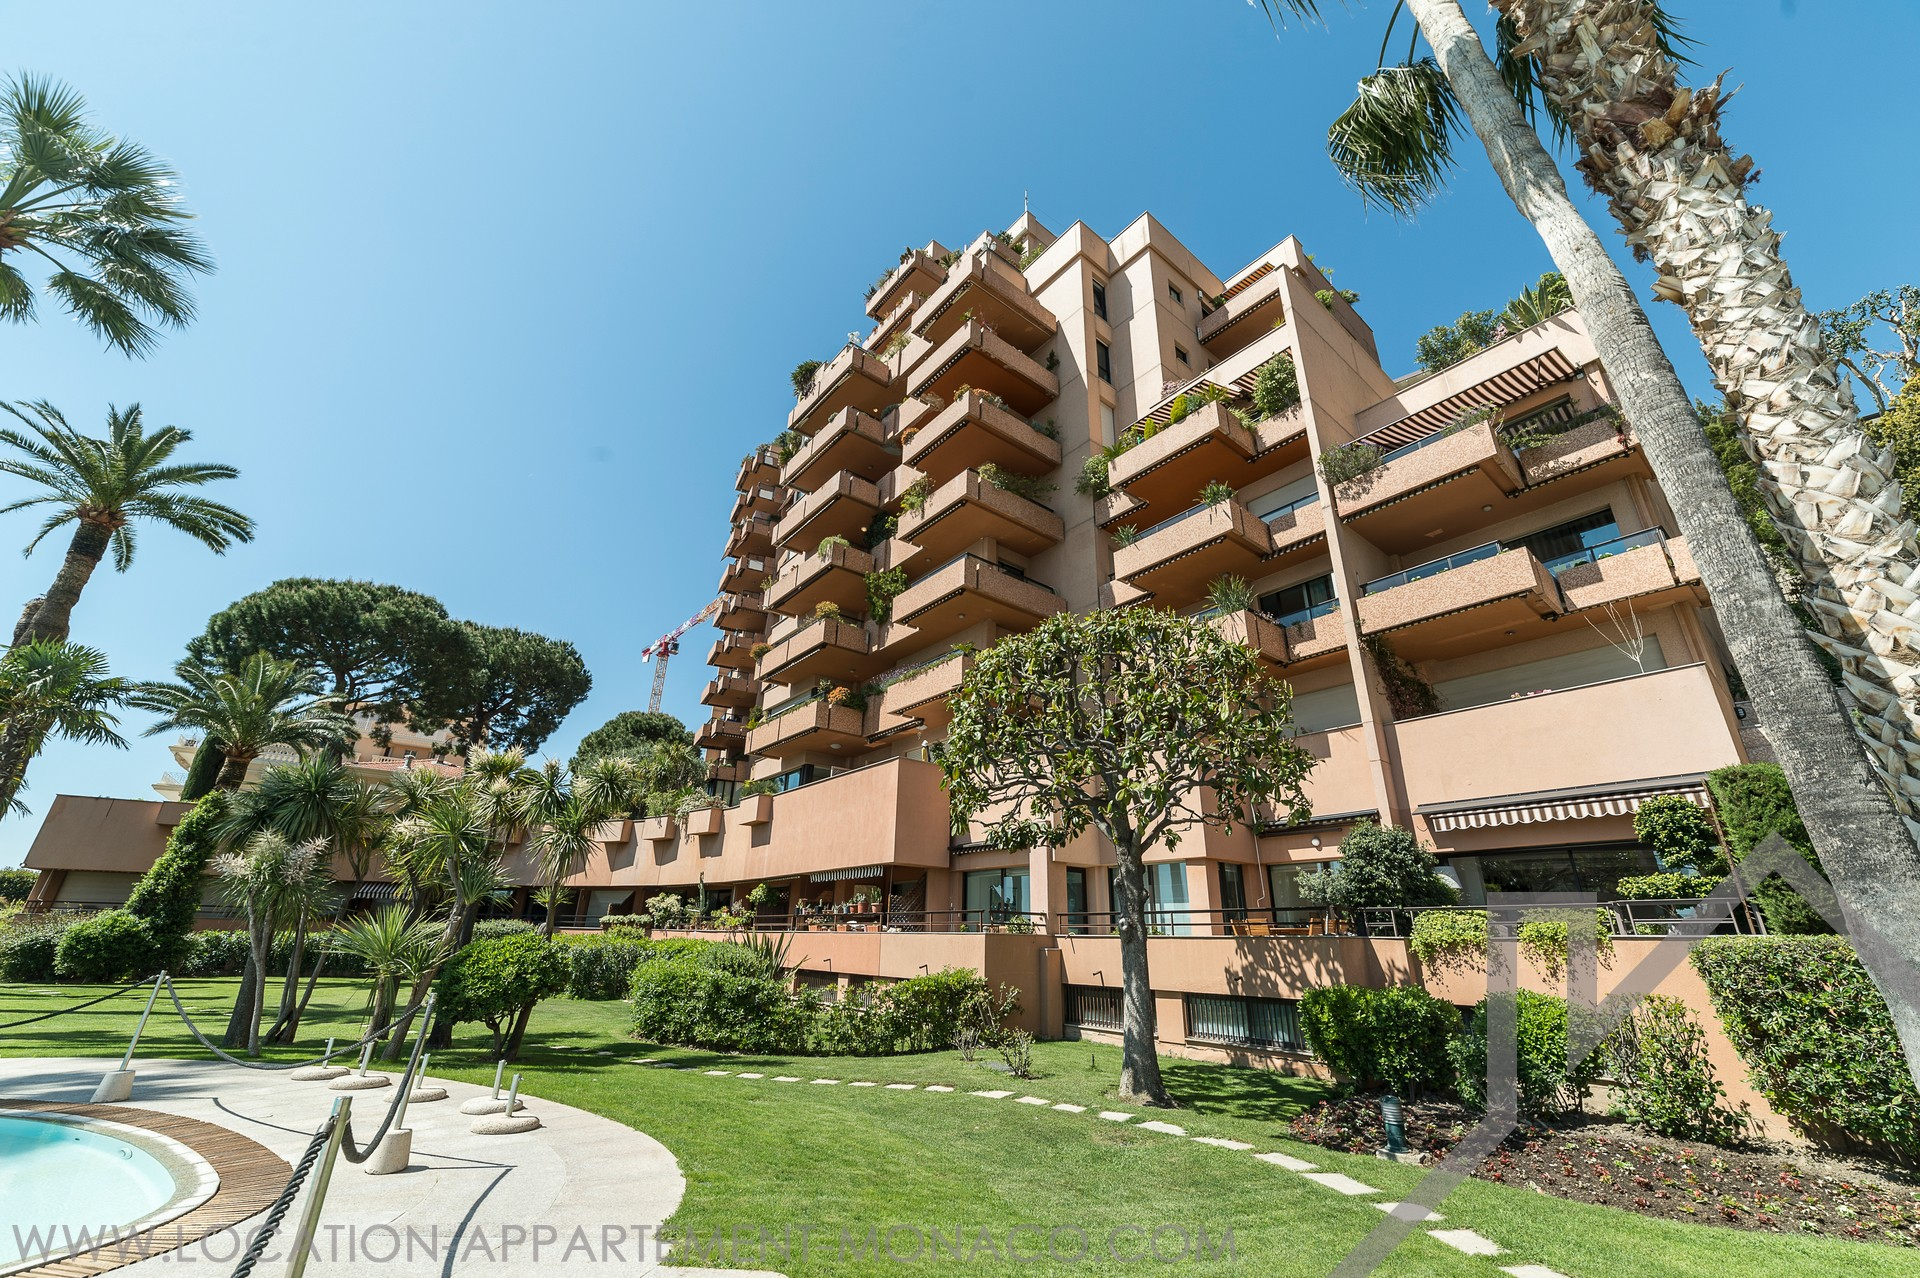 Parc Saint Roman - Furnished 3-bedroom apartment - Apartments for rent in Monaco